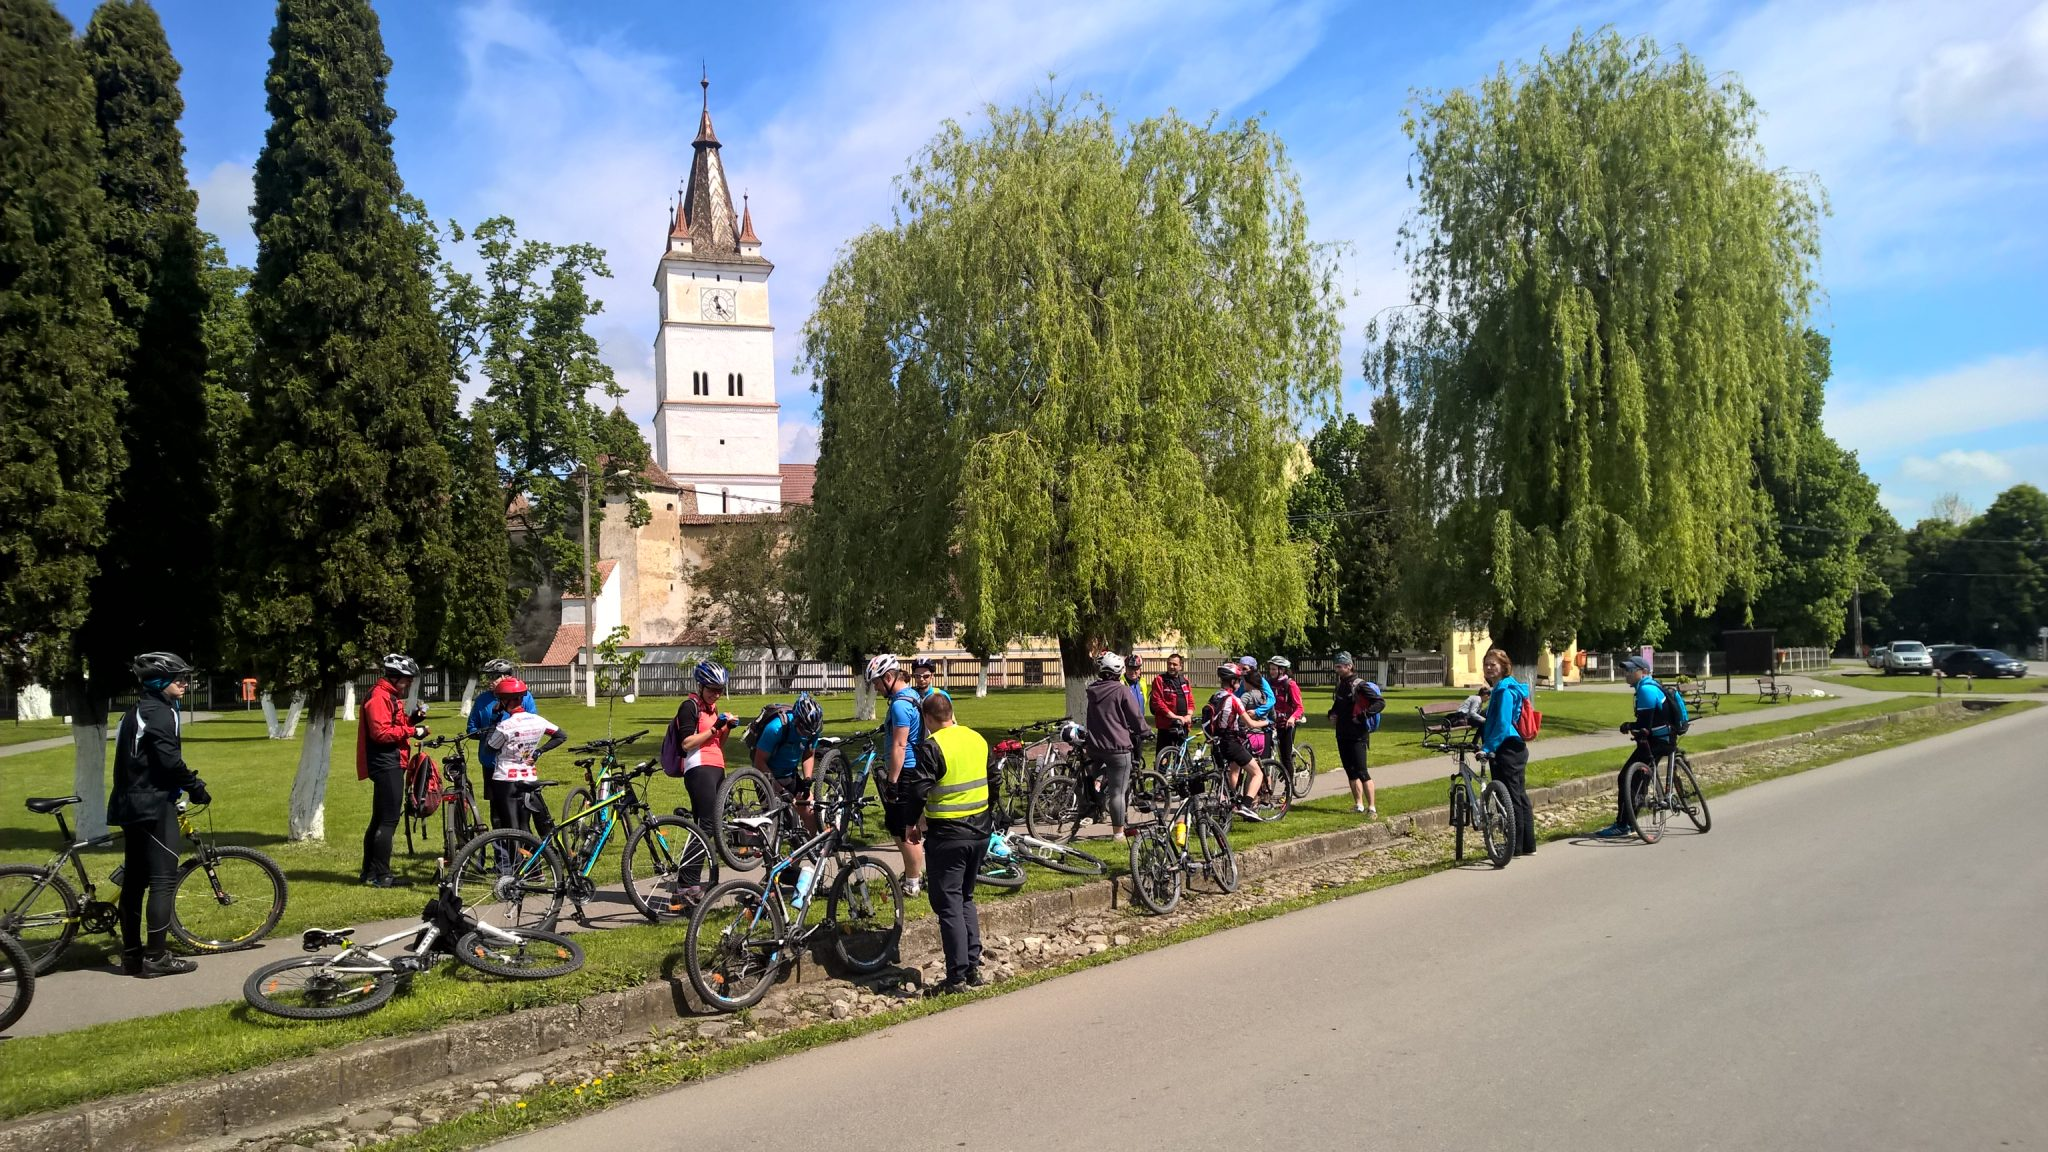 Bike tour of fortified churches near Brasov